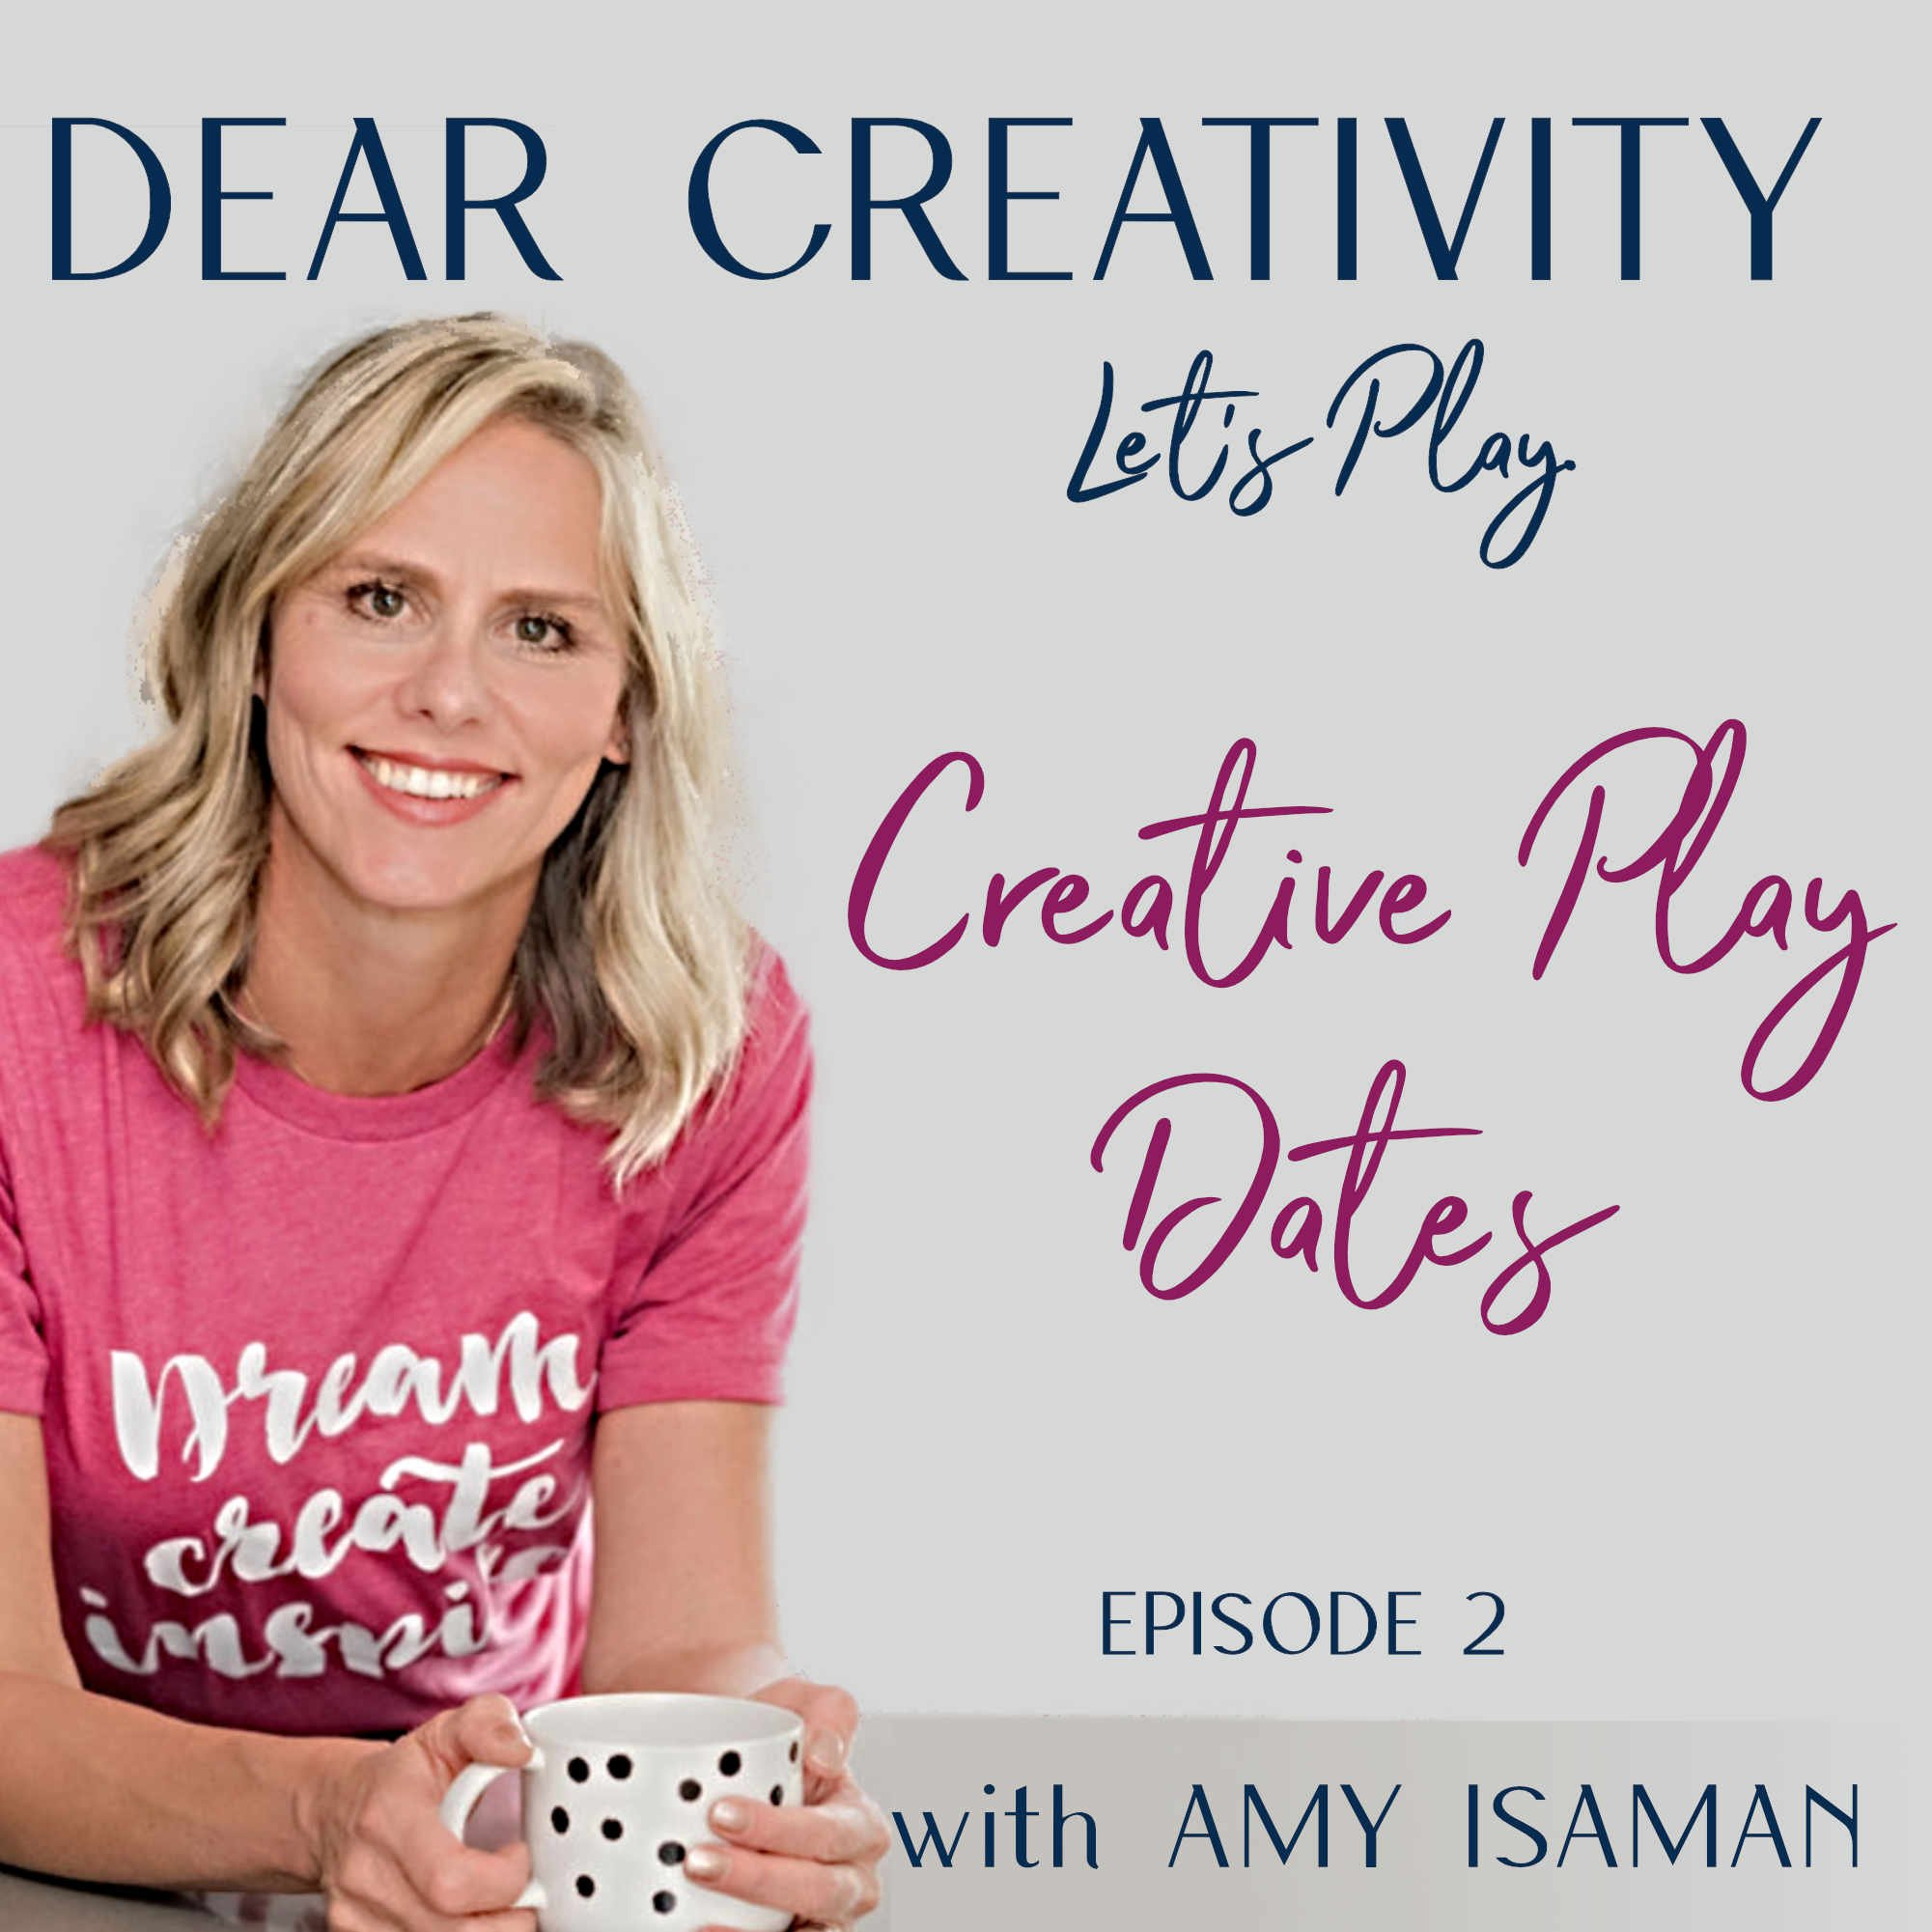 Creative Play dates episode graphic